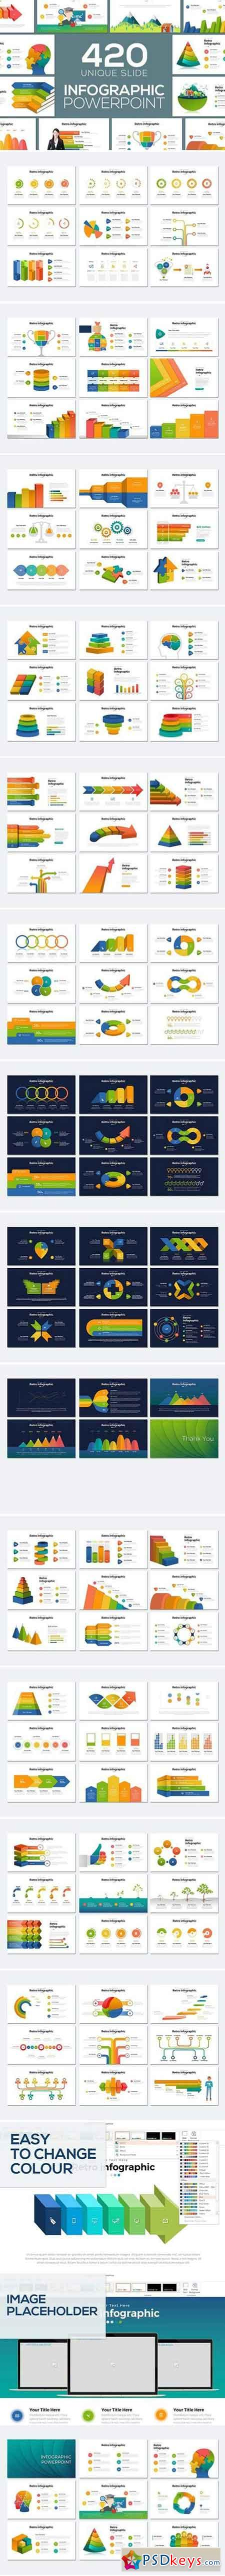 Infographic Powerpoint 2136736